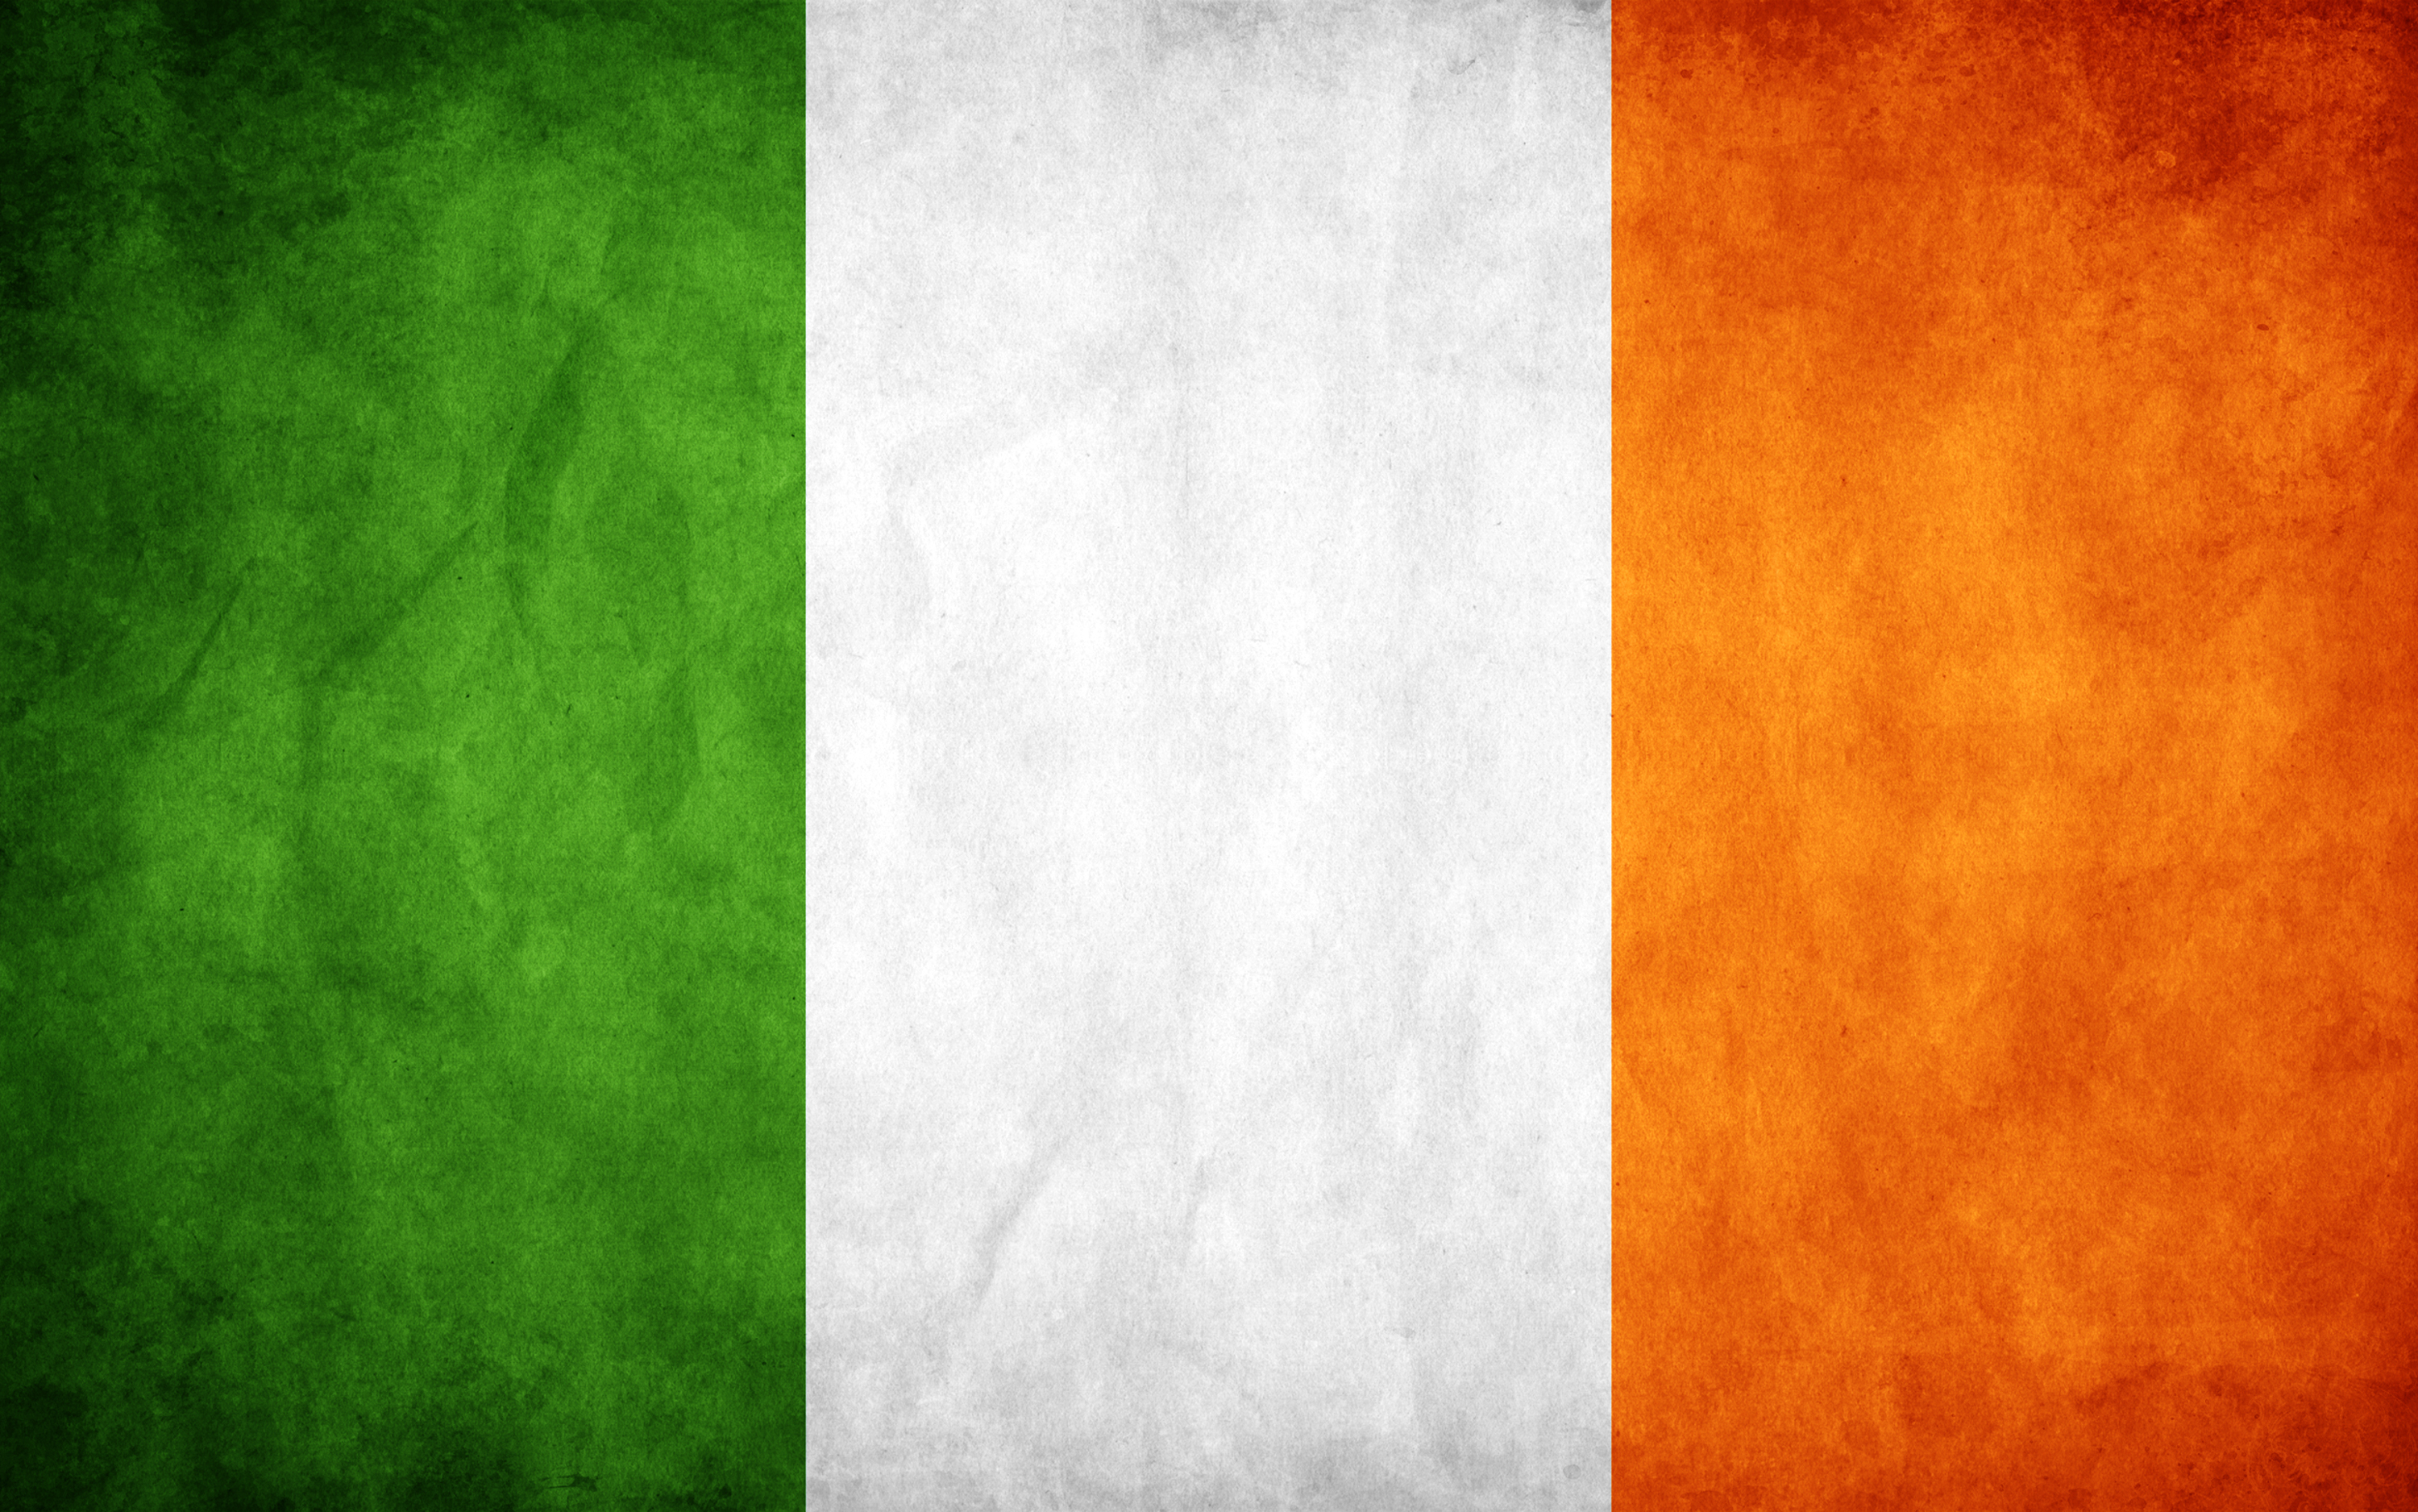 Amazing Flag Of Ireland Pictures & Backgrounds